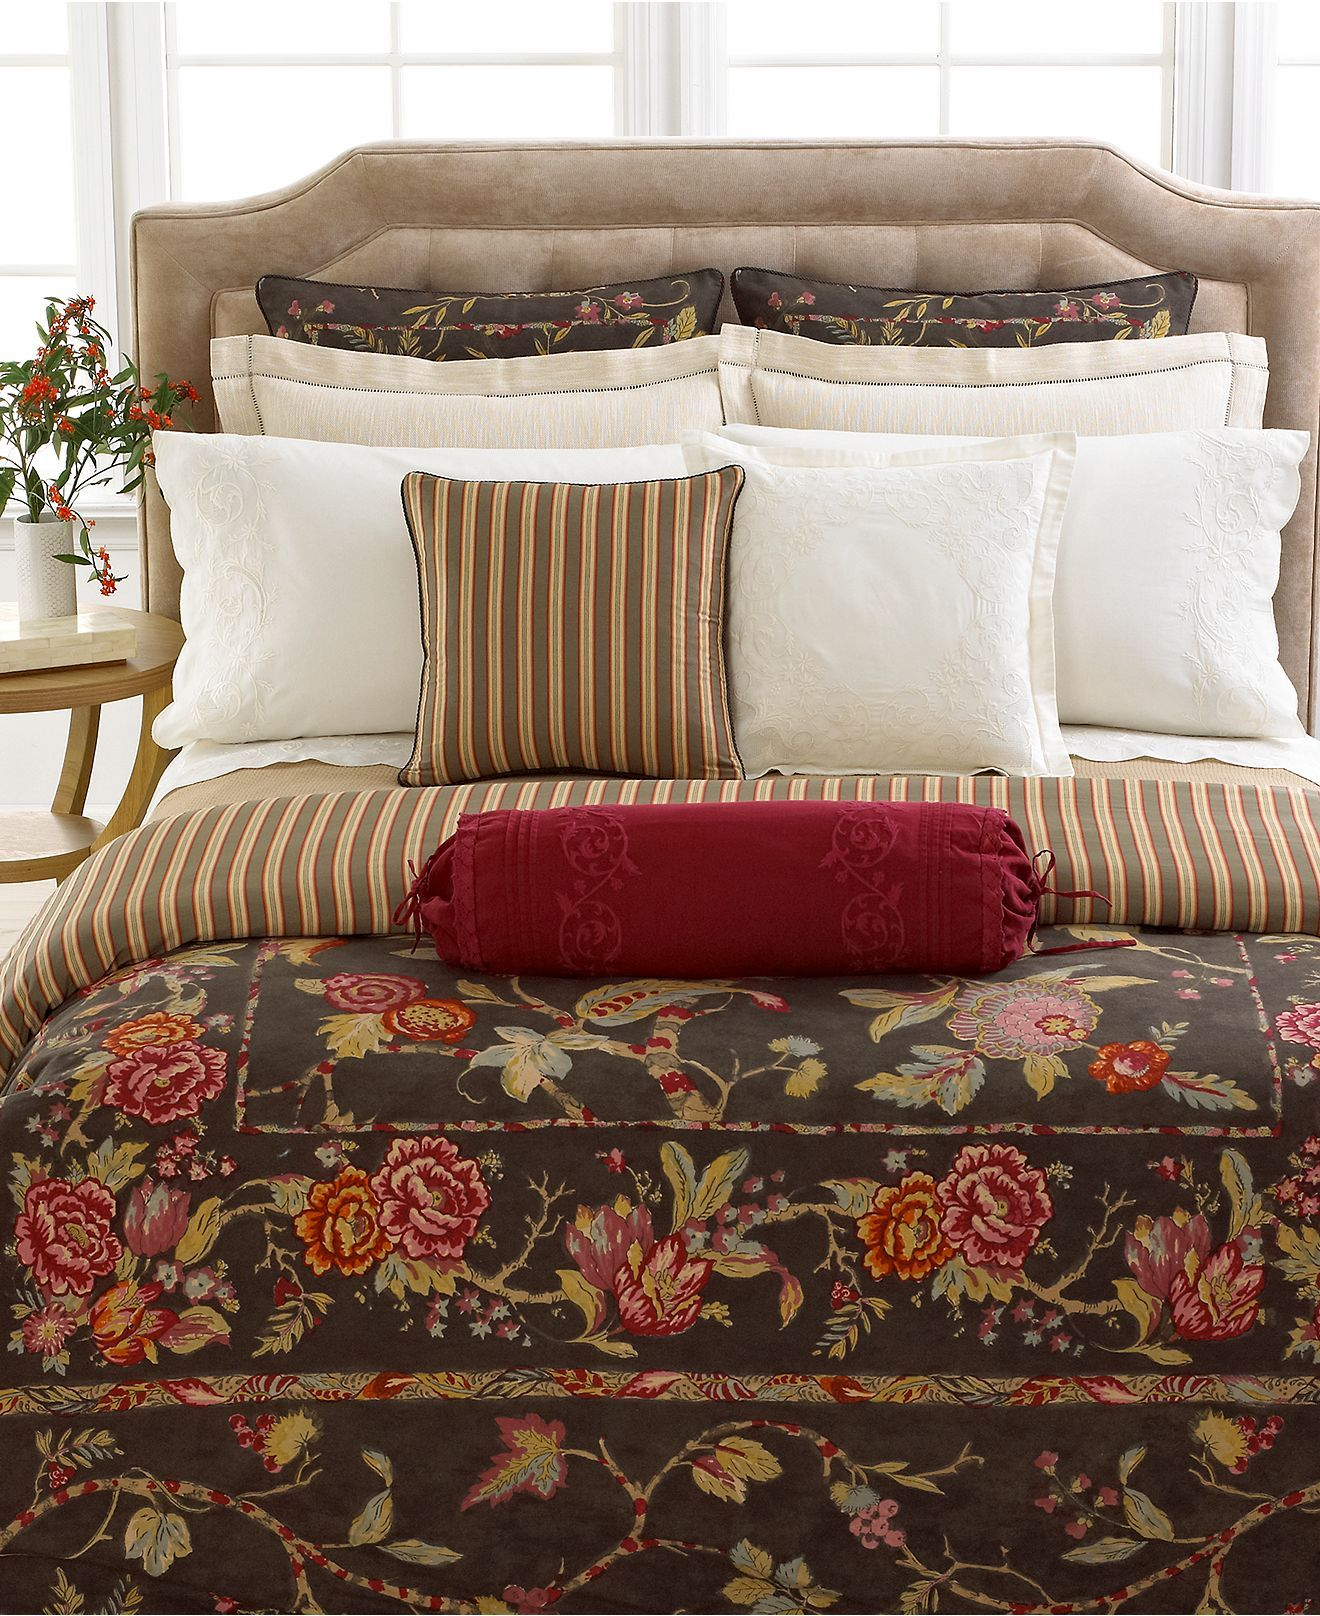 Ralph Lauren Bedding Cape Catherine Bedrooms Amp Bedding